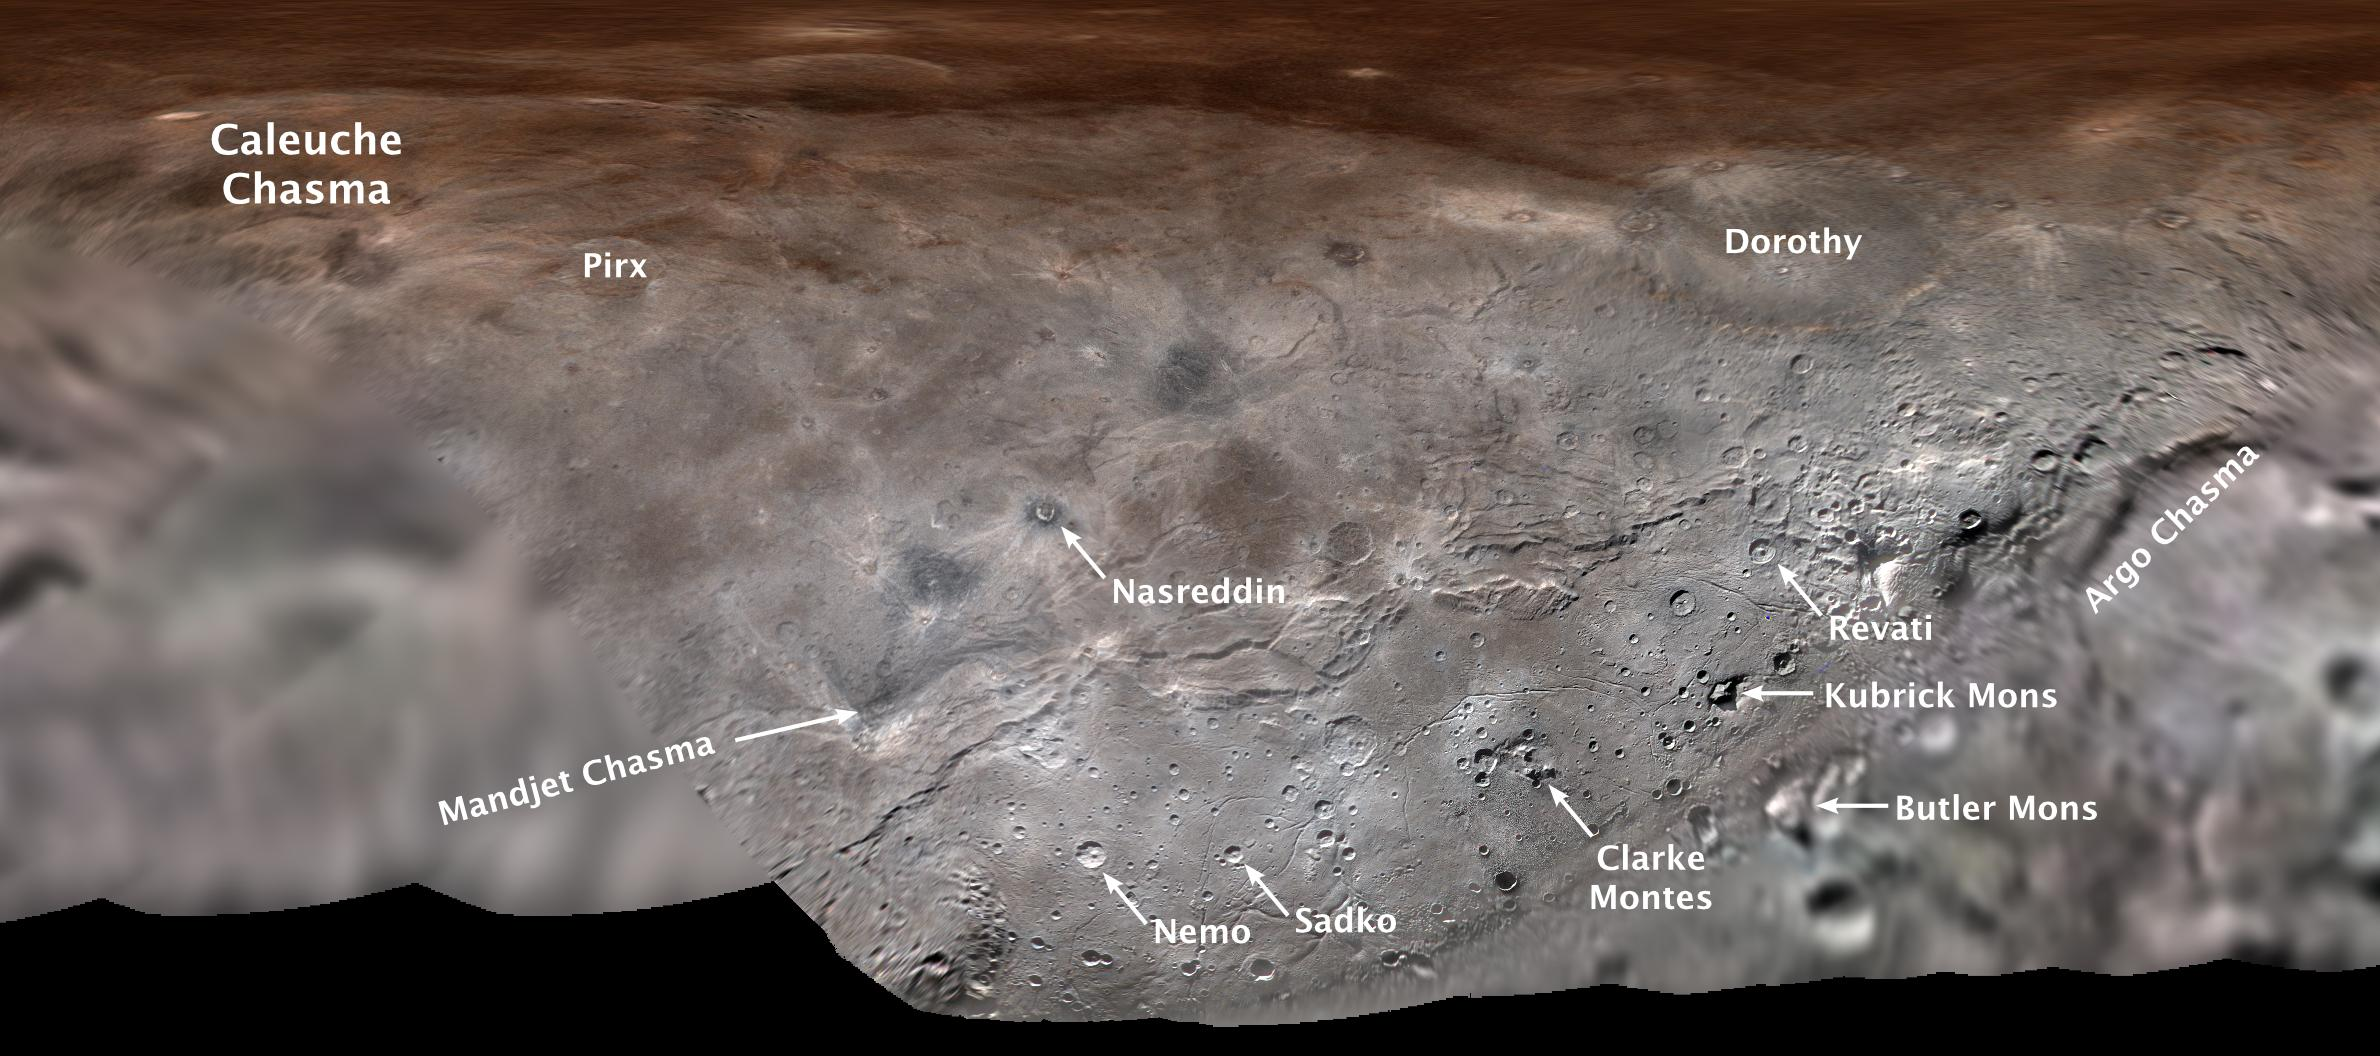 Flat map of Charon with feature names.